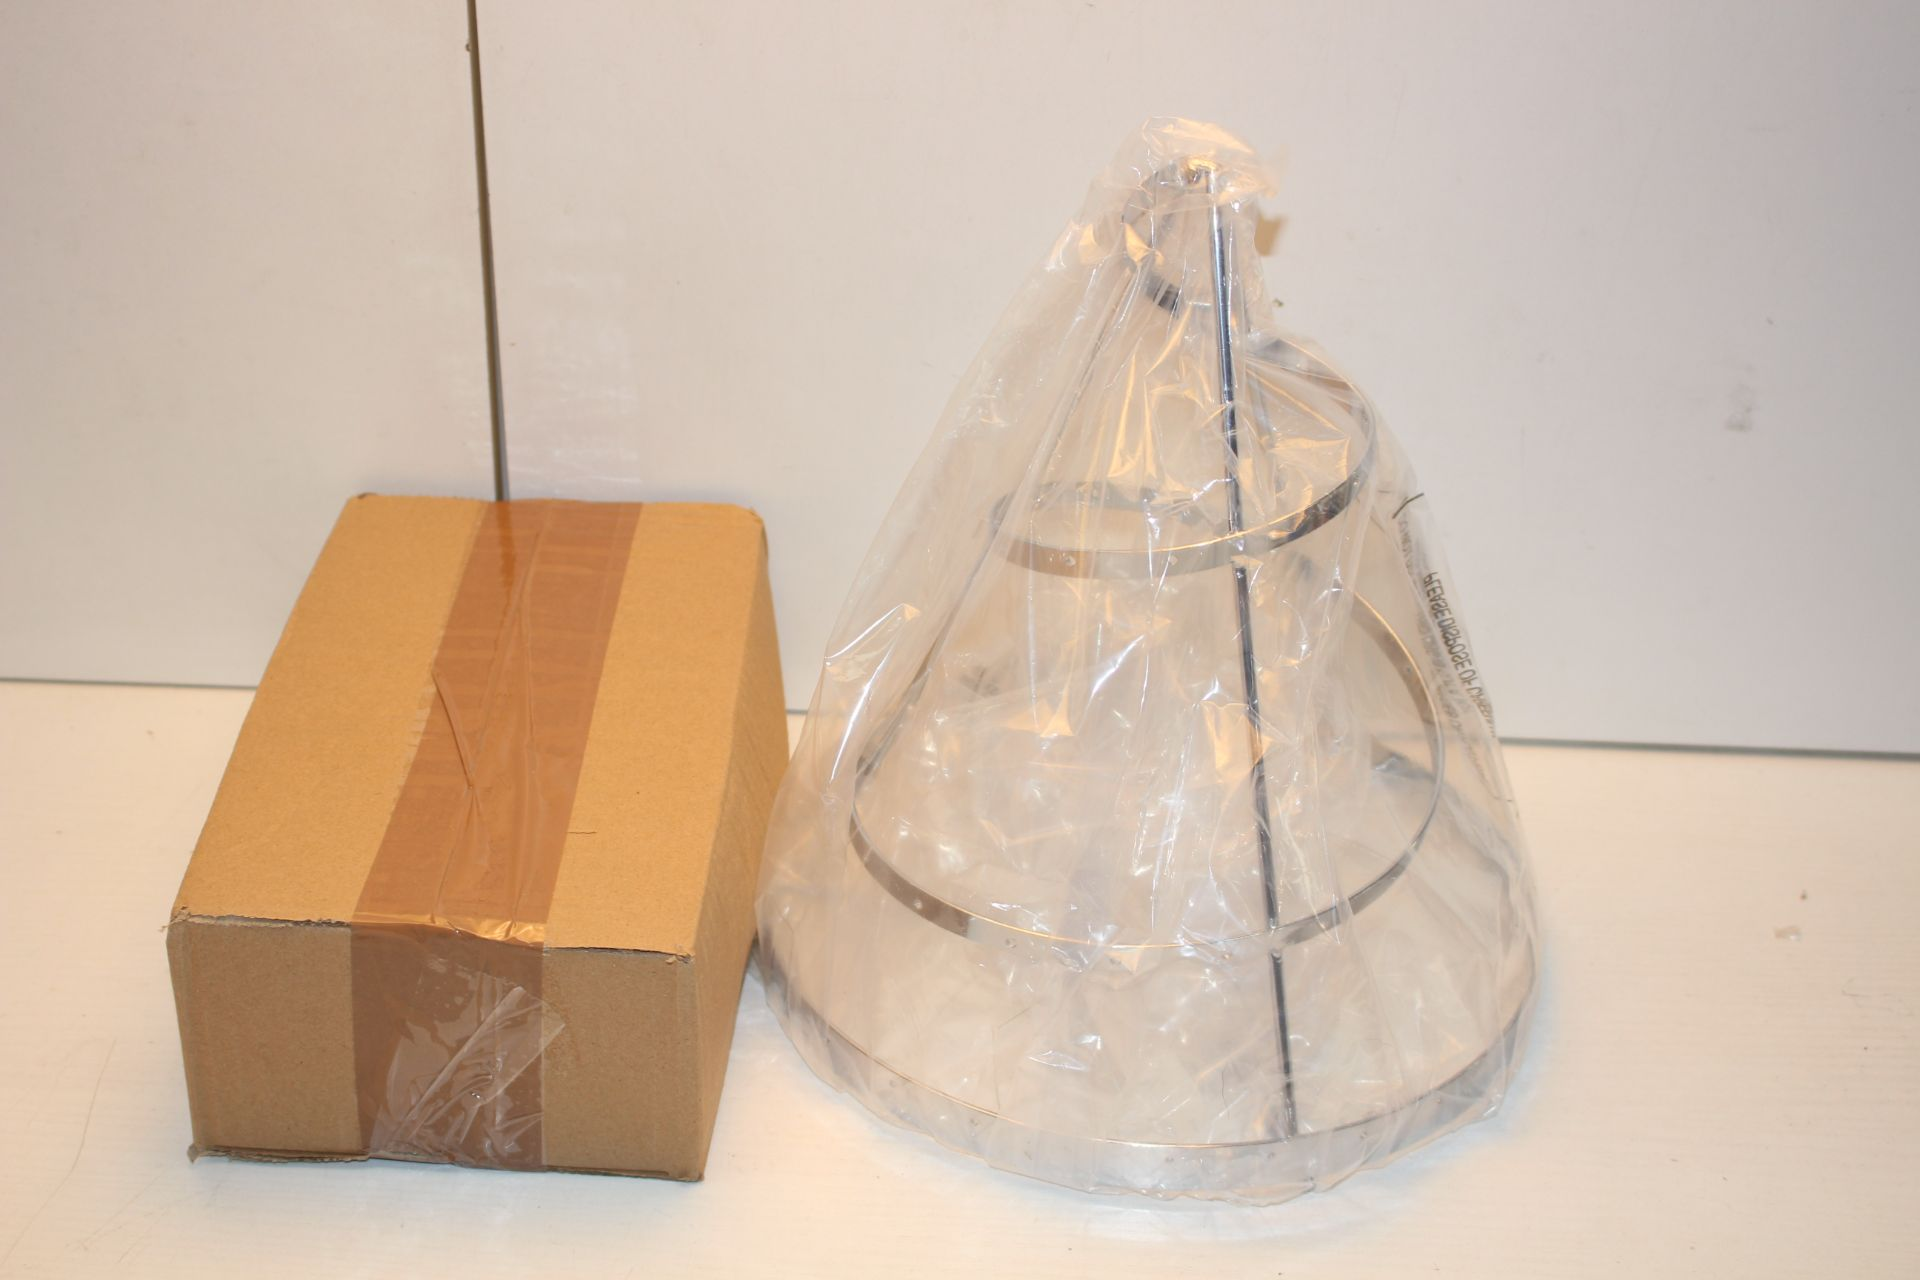 BOXED WATERFALL SP PENDANT RRP £16.99Condition ReportAppraisal Available on Request- All Items are